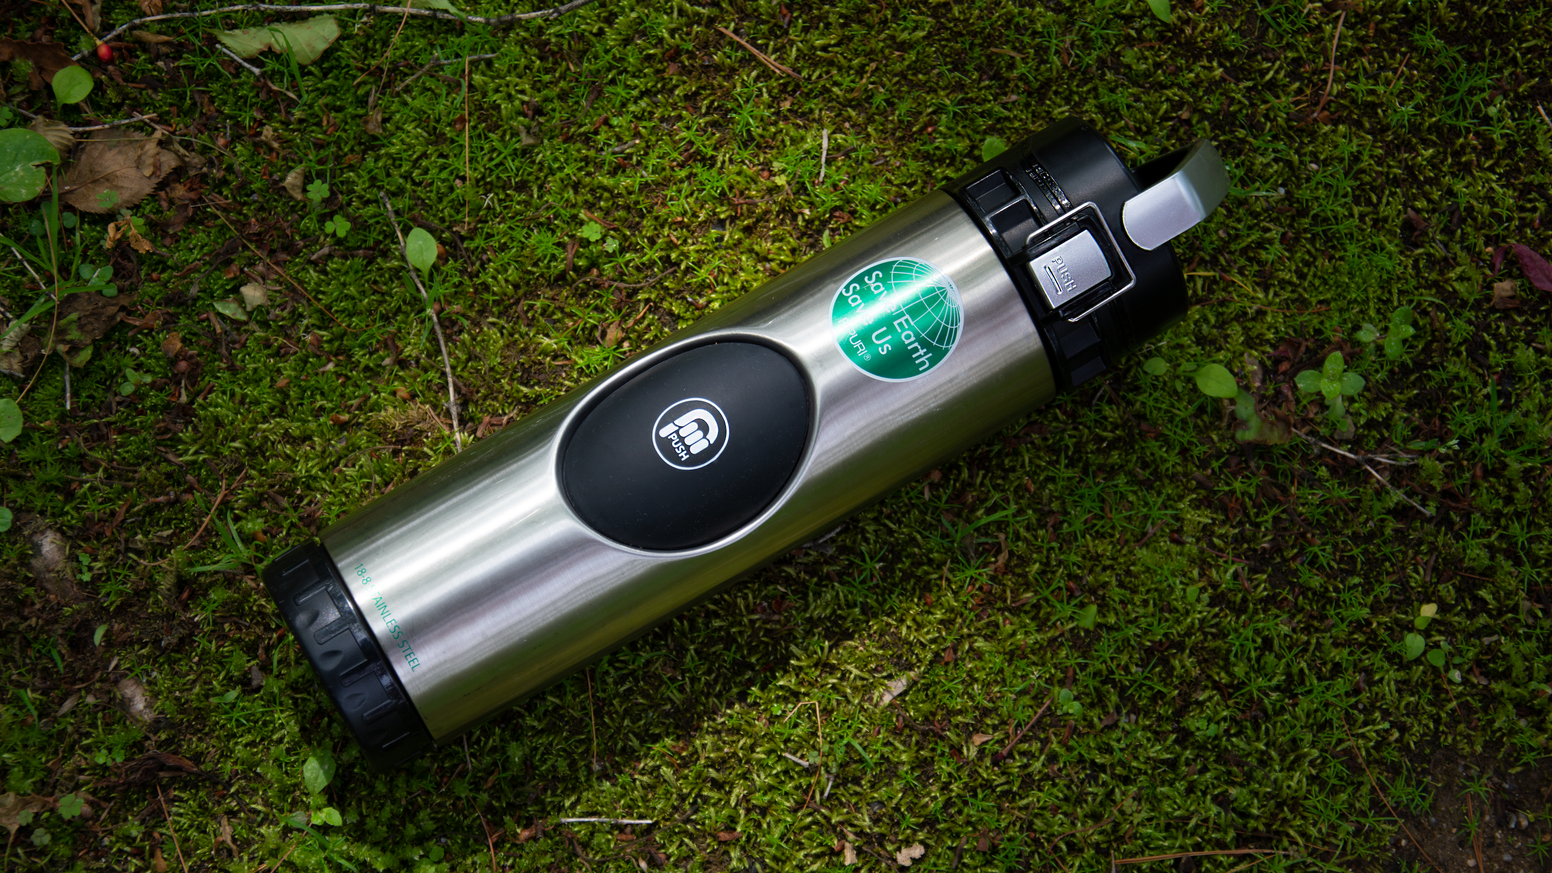 Take clean and pure drinking water wherever you go! The Filtration Bottle Industry is about to be disrupted.